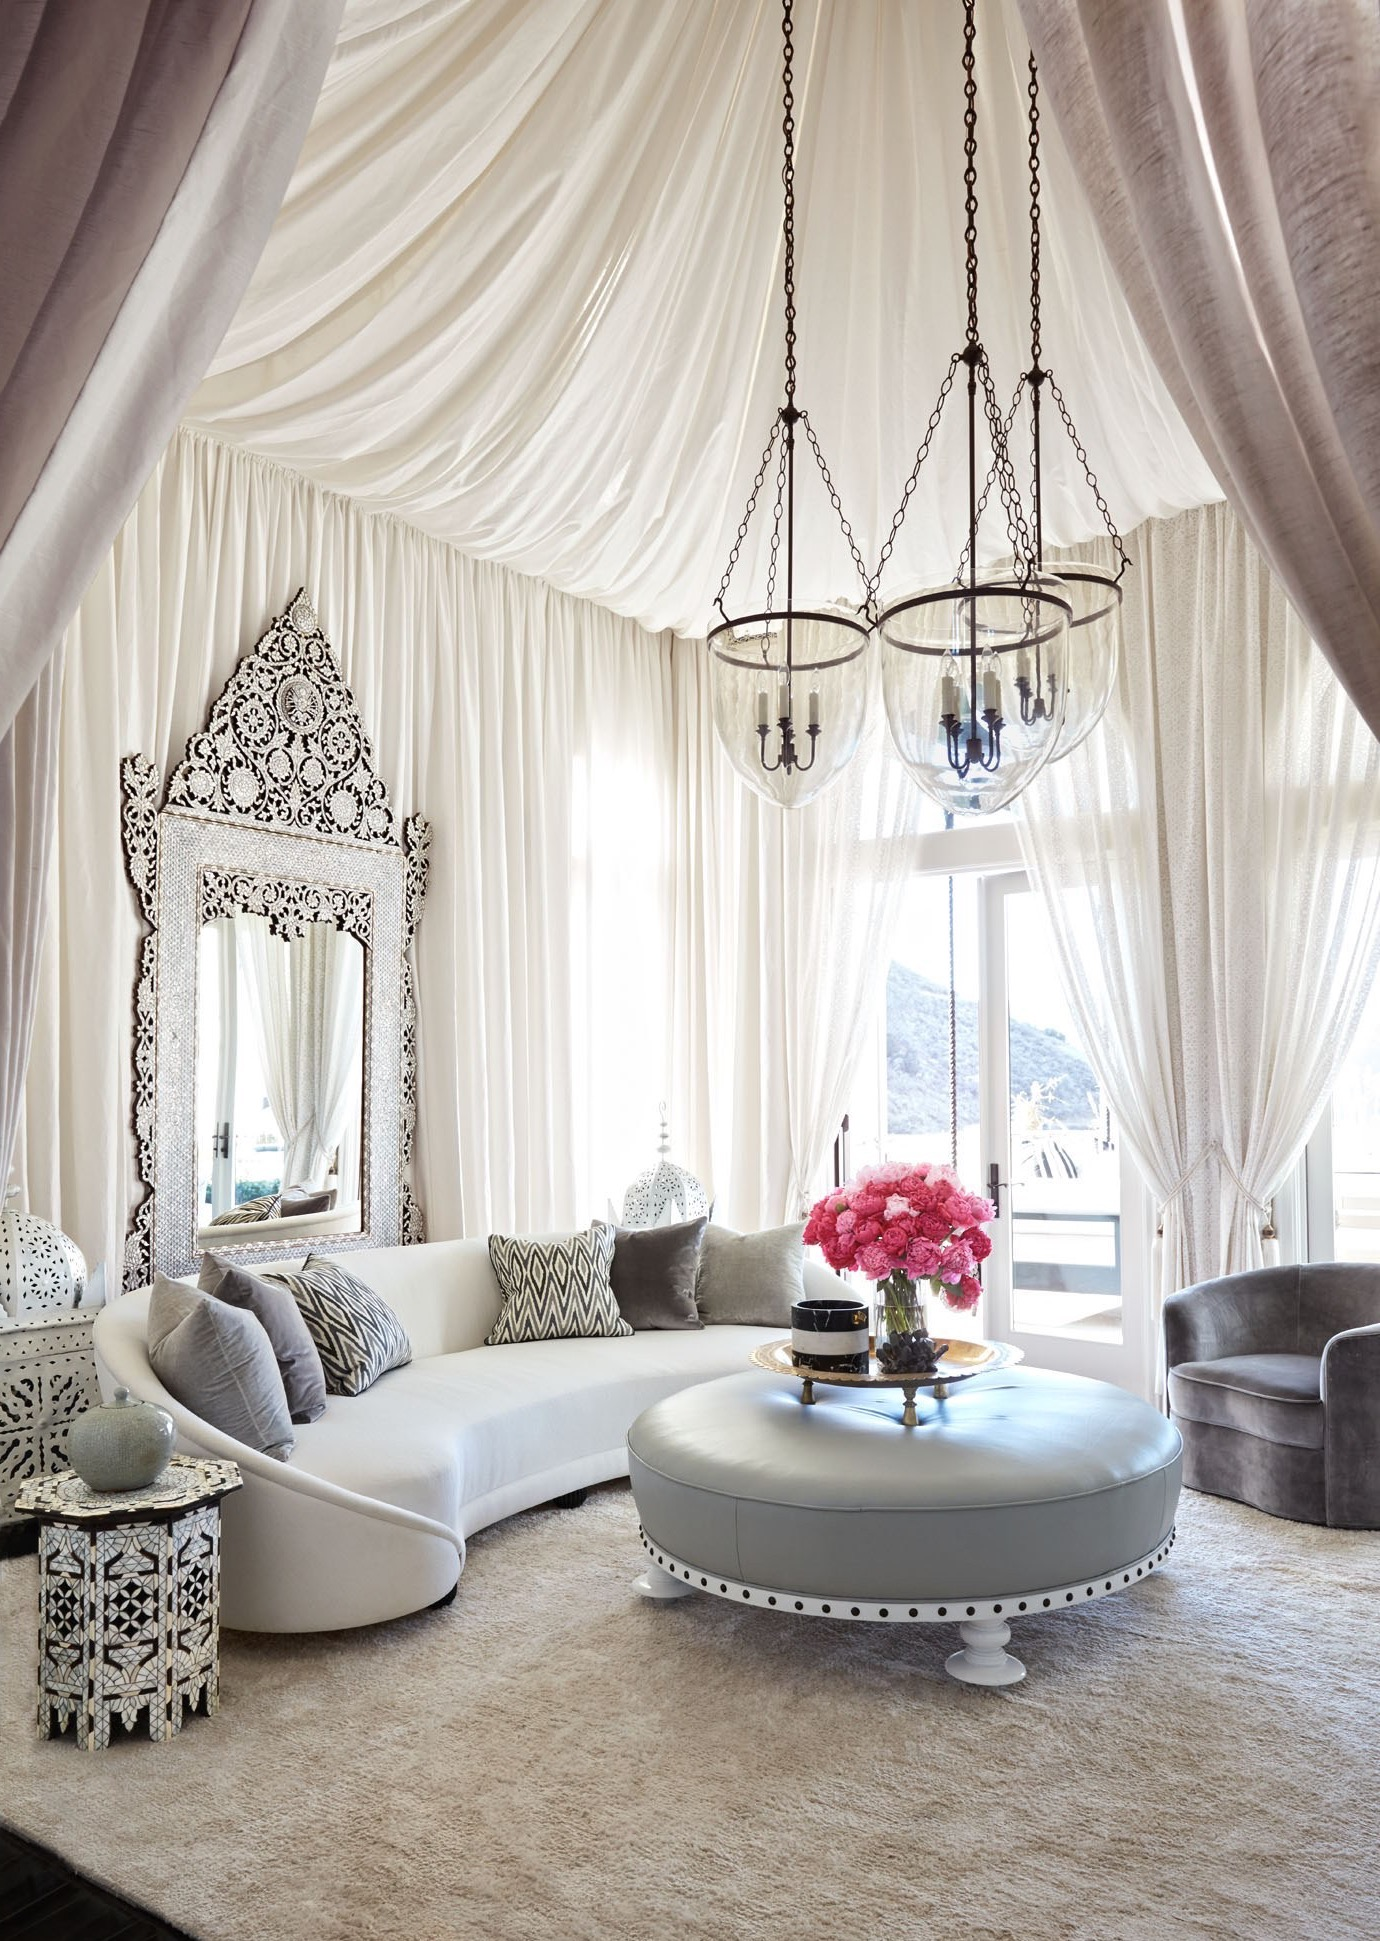 Classic Elegant Moroccan Living Room With Beautiful Ceiling (View 21 of 25)